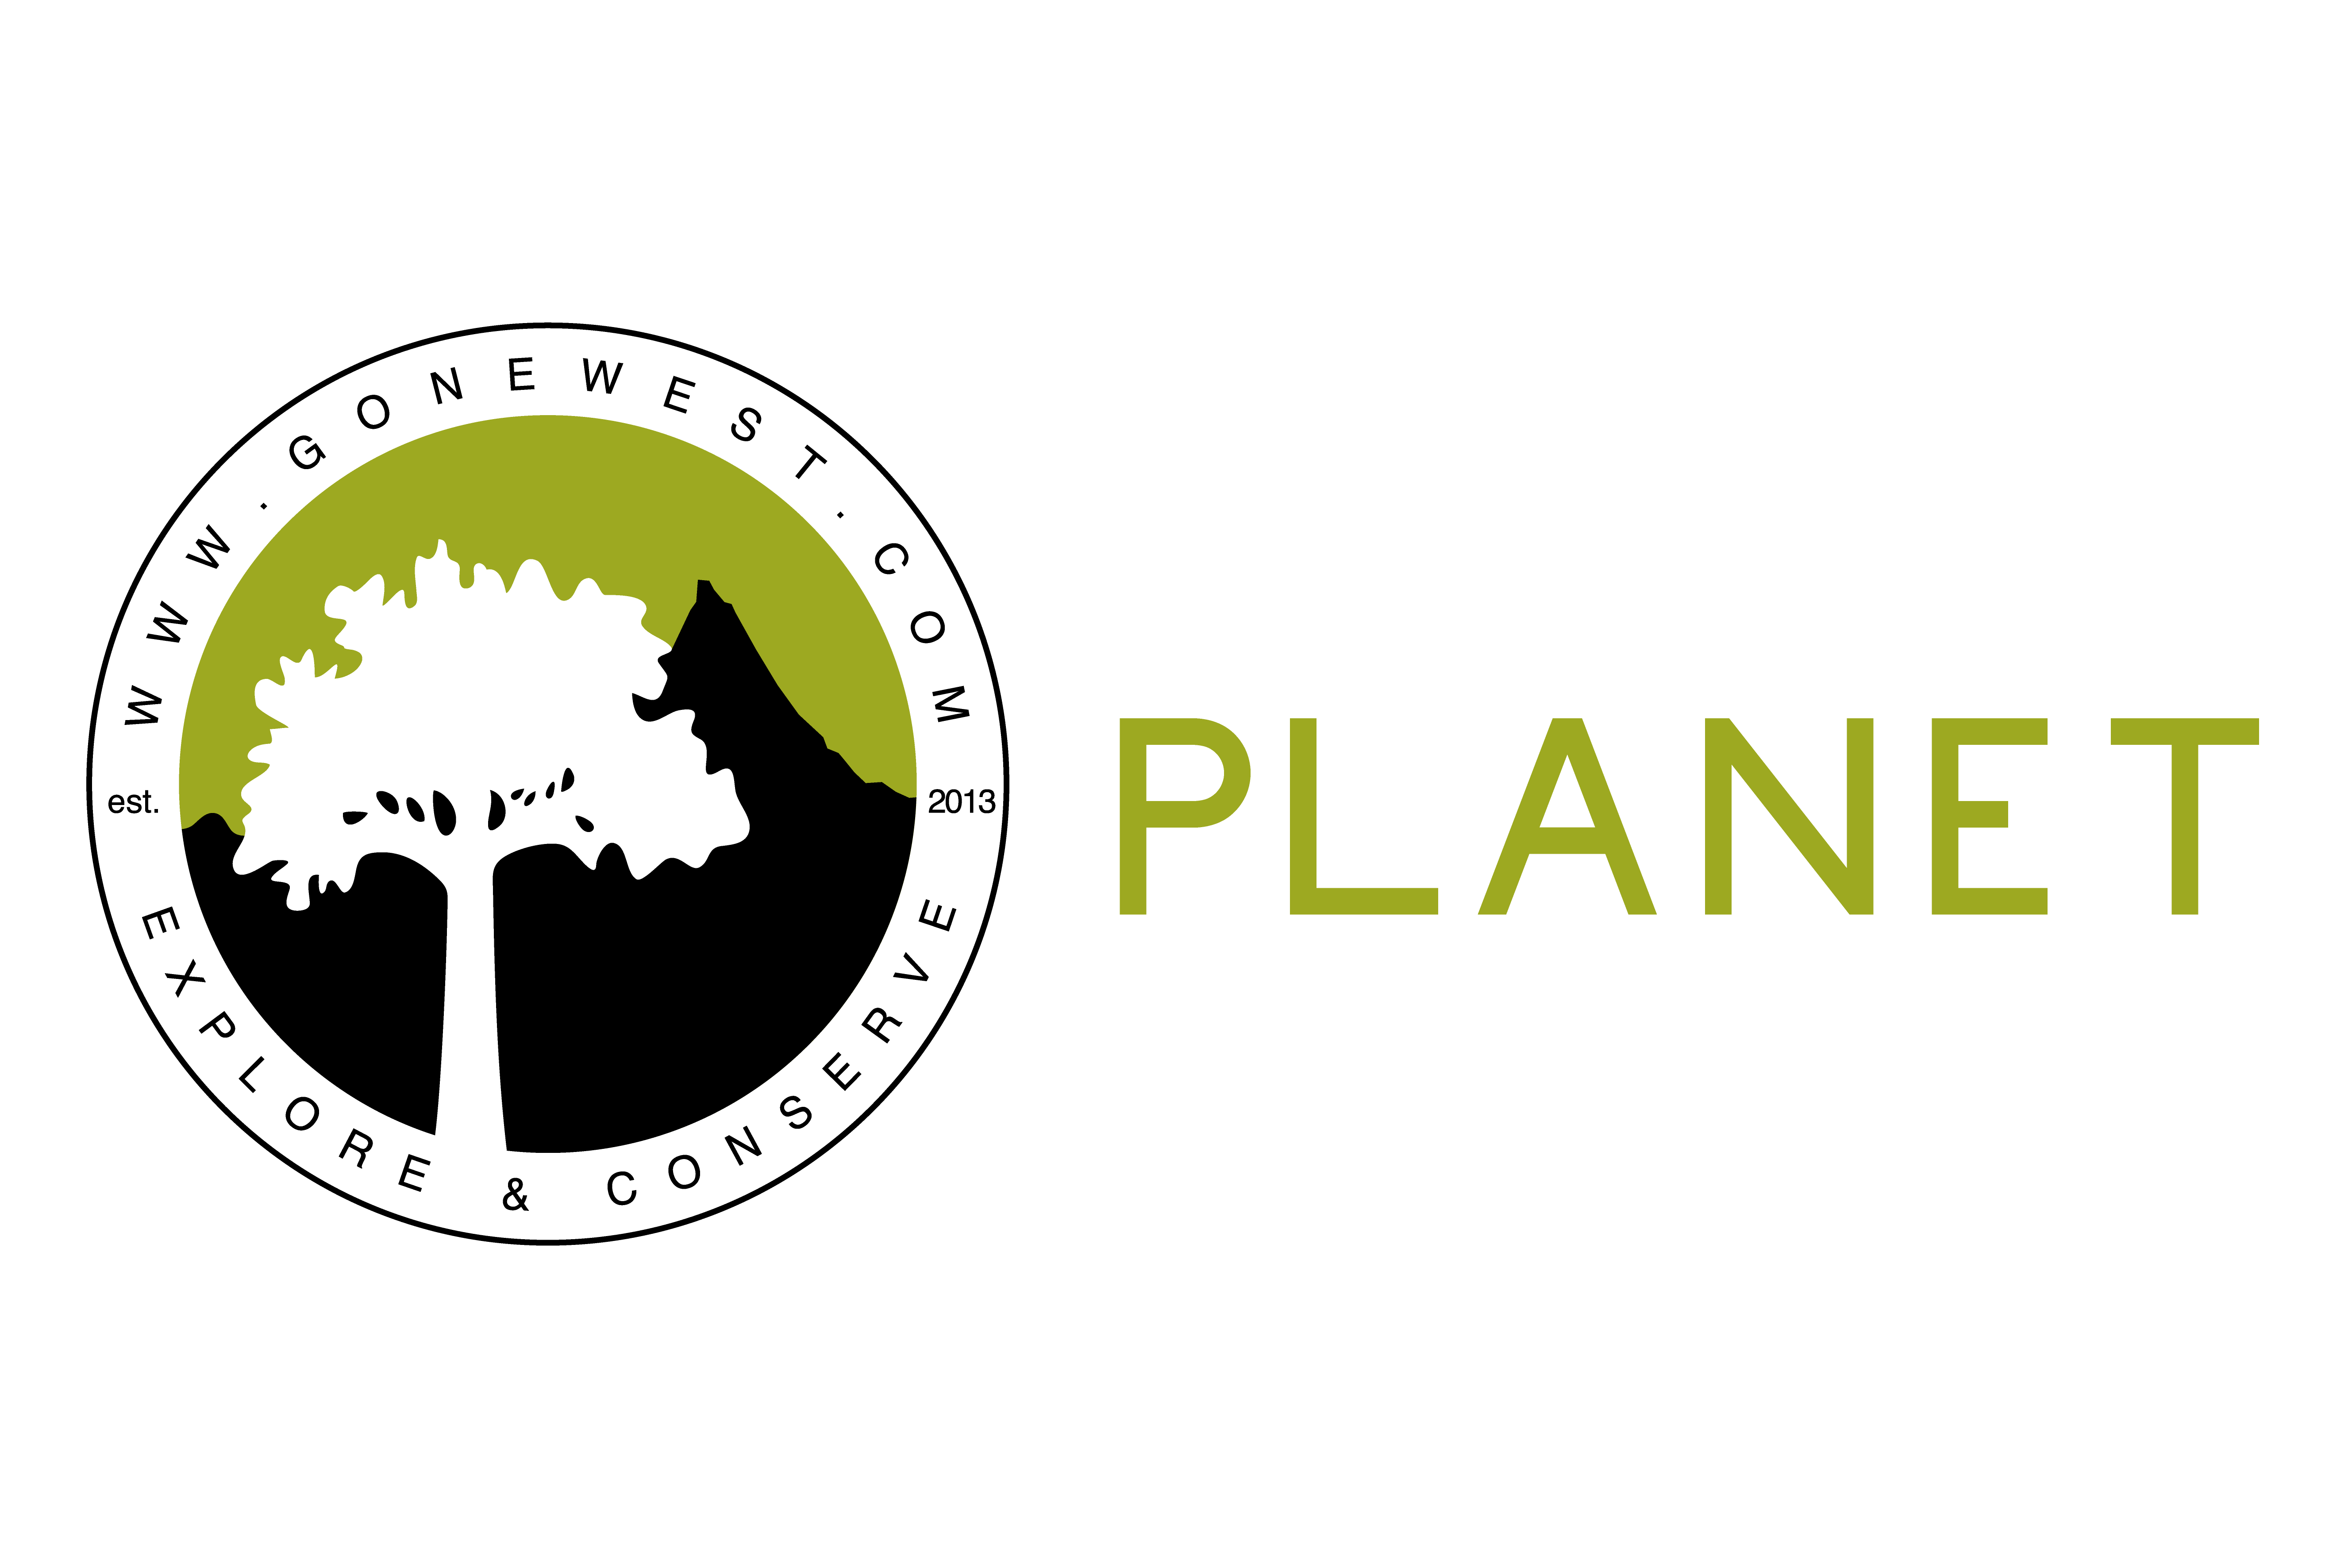 FOR-THE-PLANET_BY-GONE-WEST_logo-white